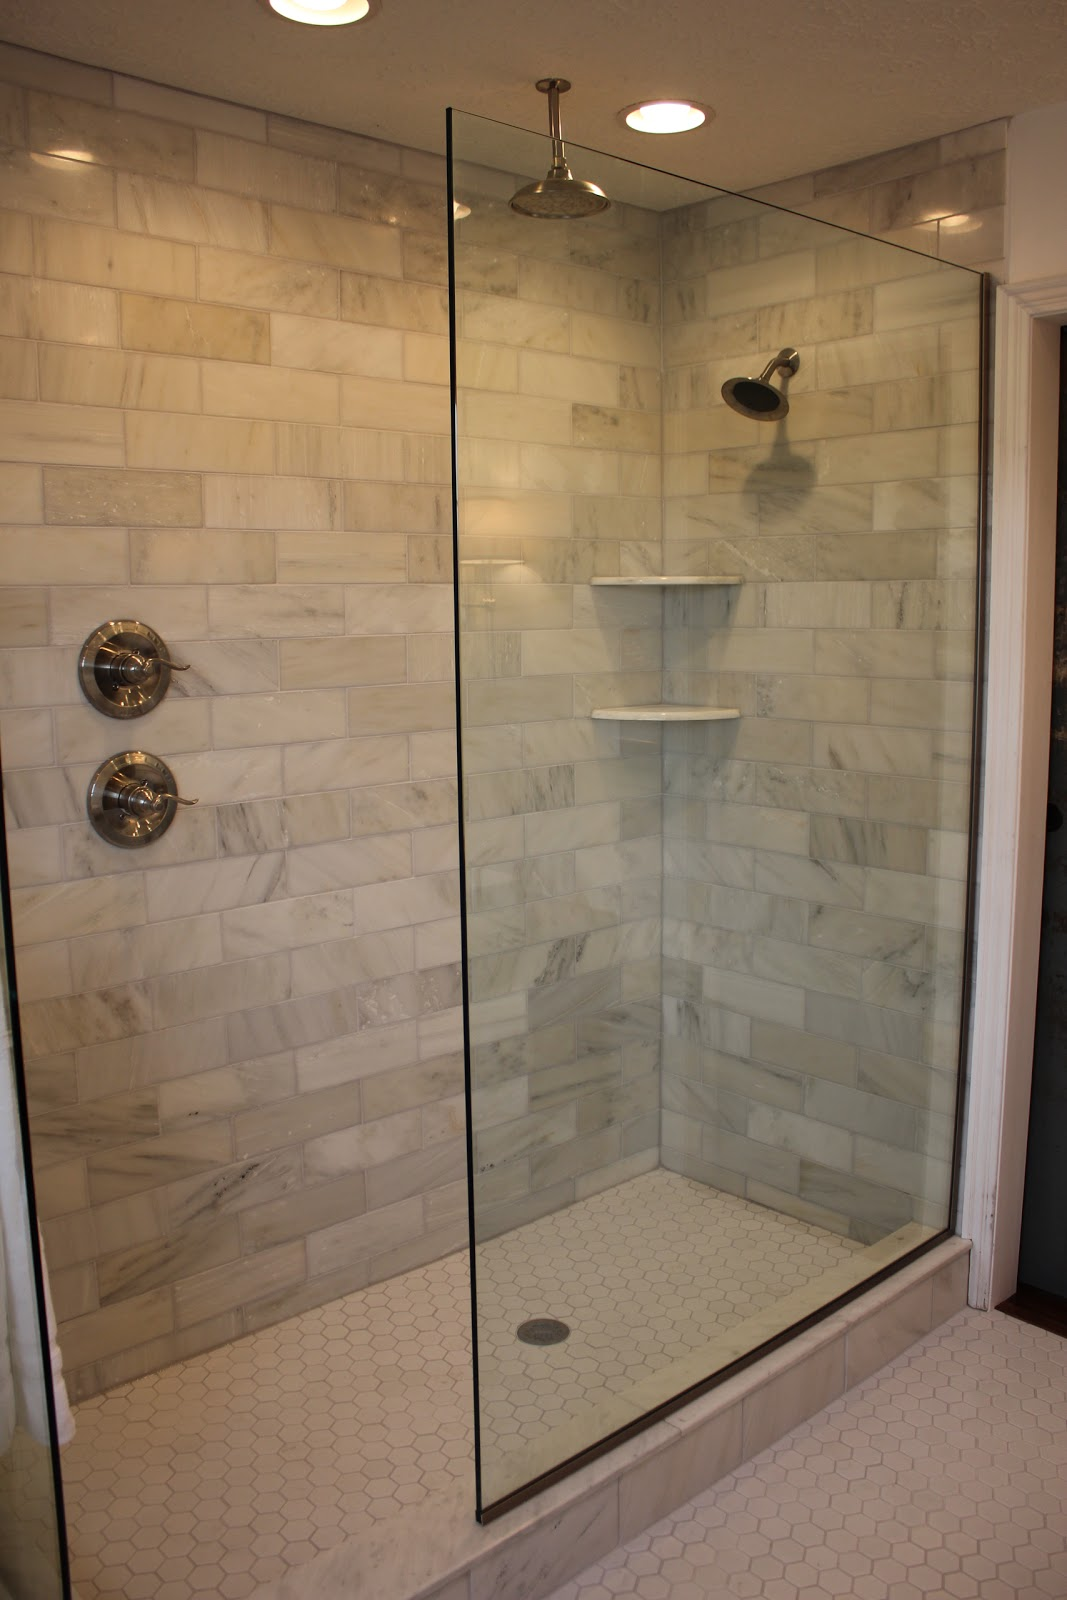 Design decor and remodel projects Tile a shower